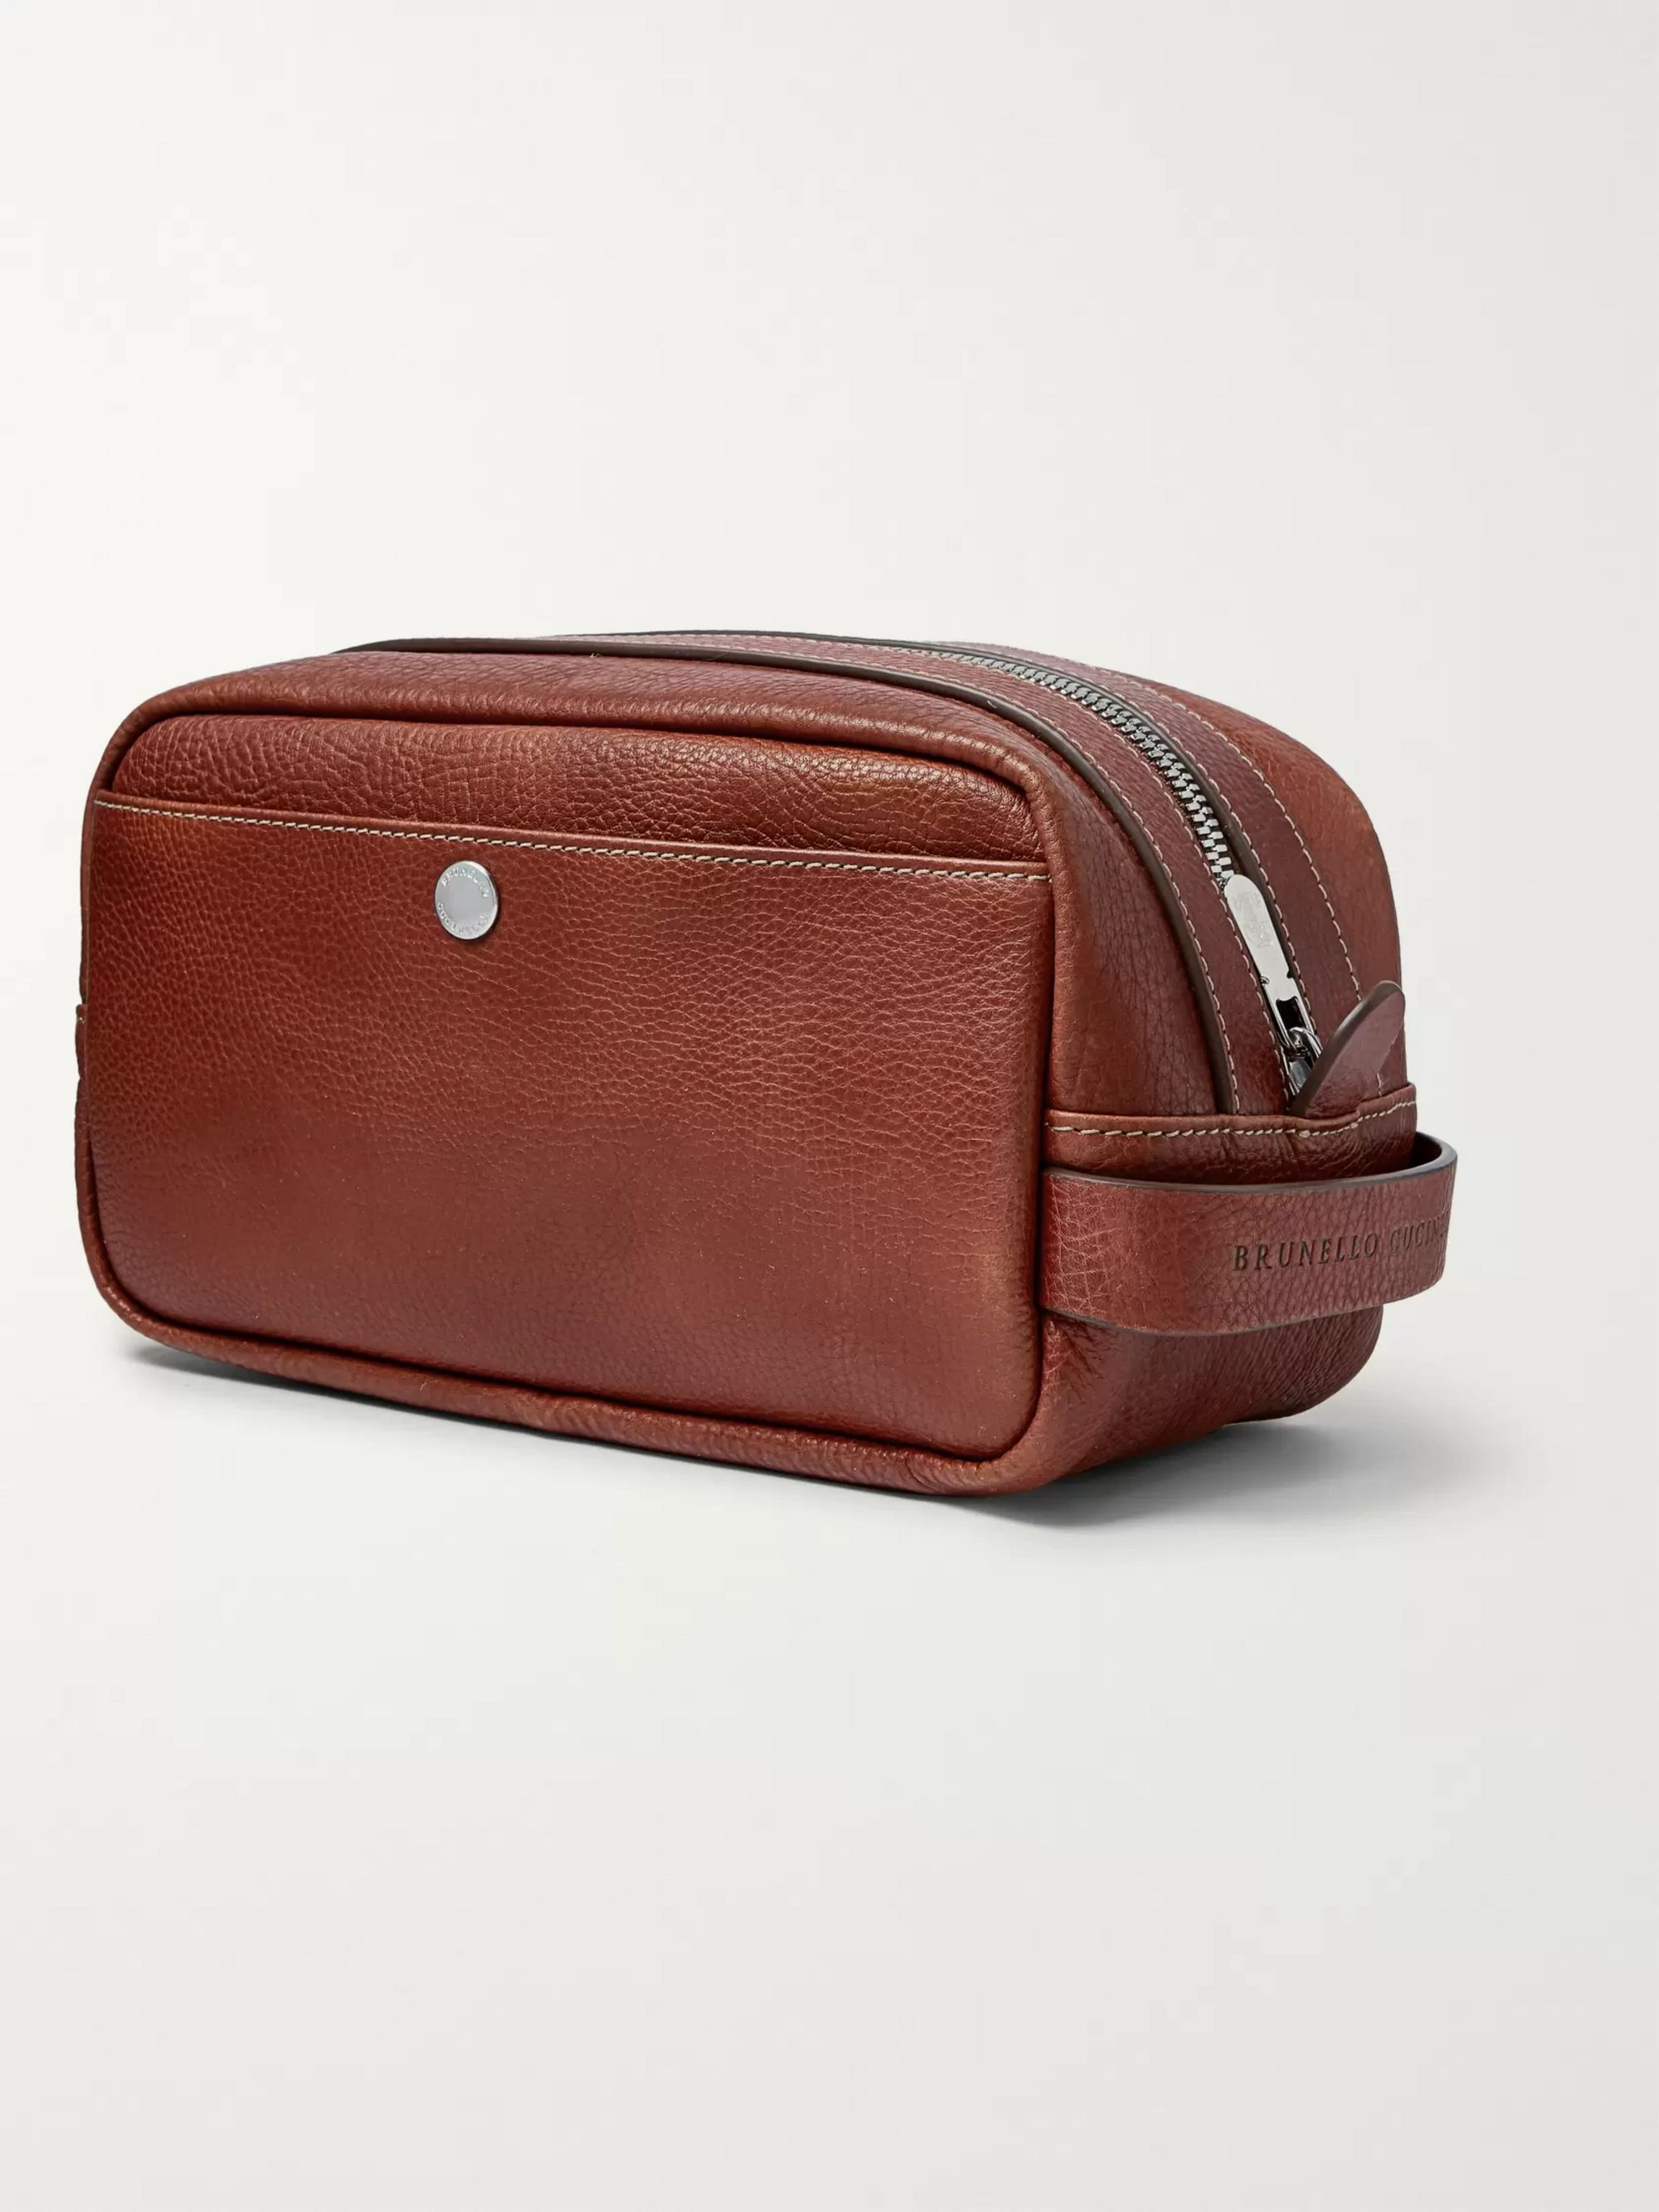 Brunello Cucinelli Full-Grain Leather Wash Bag